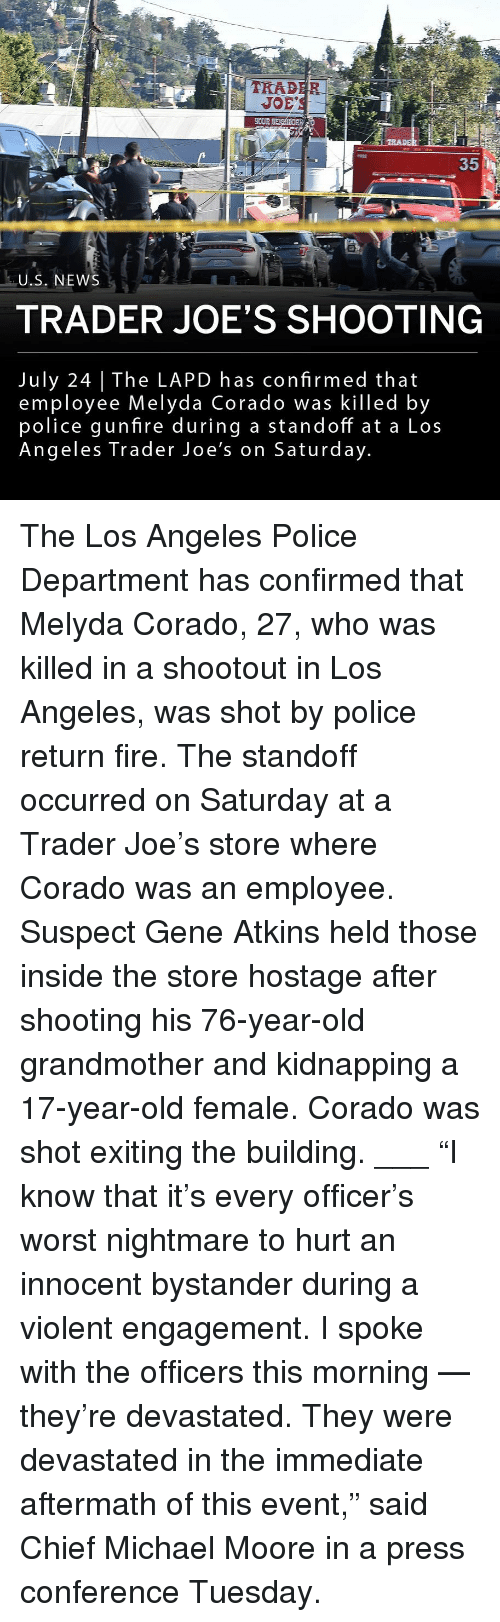 "atkins: 1-2  TRAD  EOUR  35  U.S. NEWS  TRADER JOE'S SHOOTING  July 24 The LAPD has confirmed that  employee Melyda Corado was killed by  police gunfire during a standoff at a Los  Angeles Trader Joe's on Saturday The Los Angeles Police Department has confirmed that Melyda Corado, 27, who was killed in a shootout in Los Angeles, was shot by police return fire. The standoff occurred on Saturday at a Trader Joe's store where Corado was an employee. Suspect Gene Atkins held those inside the store hostage after shooting his 76-year-old grandmother and kidnapping a 17-year-old female. Corado was shot exiting the building. ___ ""I know that it's every officer's worst nightmare to hurt an innocent bystander during a violent engagement. I spoke with the officers this morning — they're devastated. They were devastated in the immediate aftermath of this event,"" said Chief Michael Moore in a press conference Tuesday."